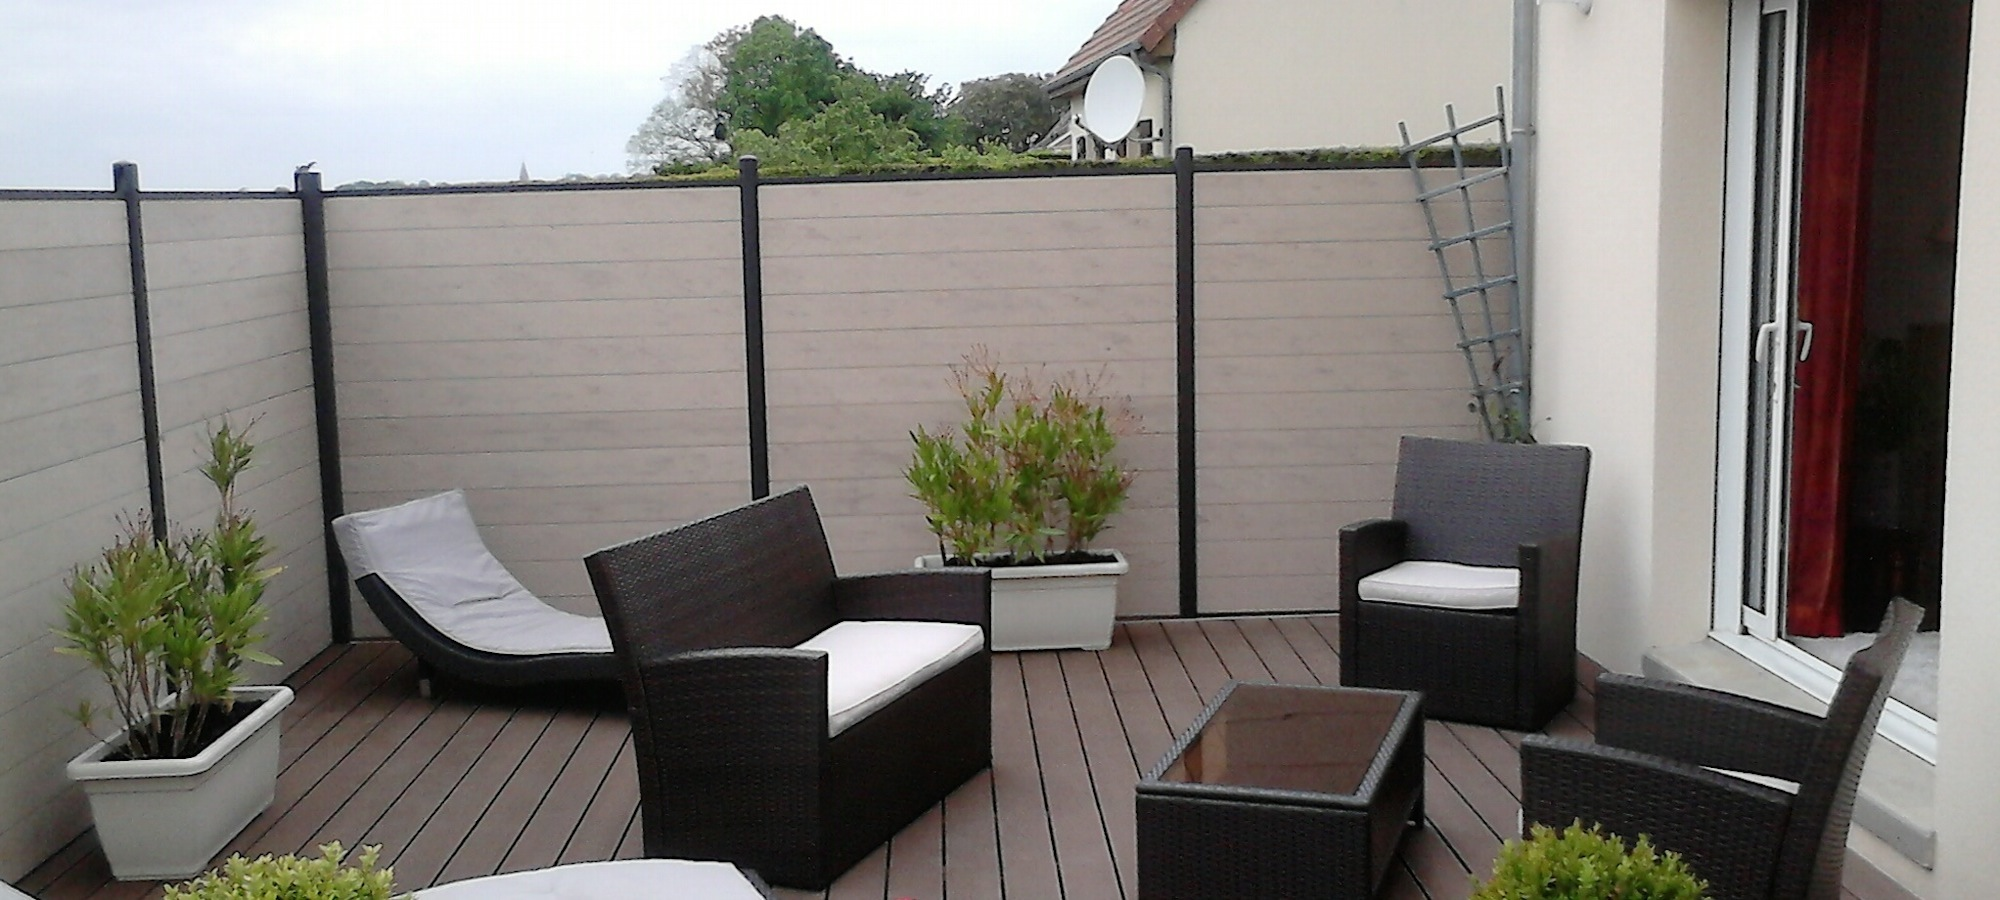 terrasse bois liege. Black Bedroom Furniture Sets. Home Design Ideas